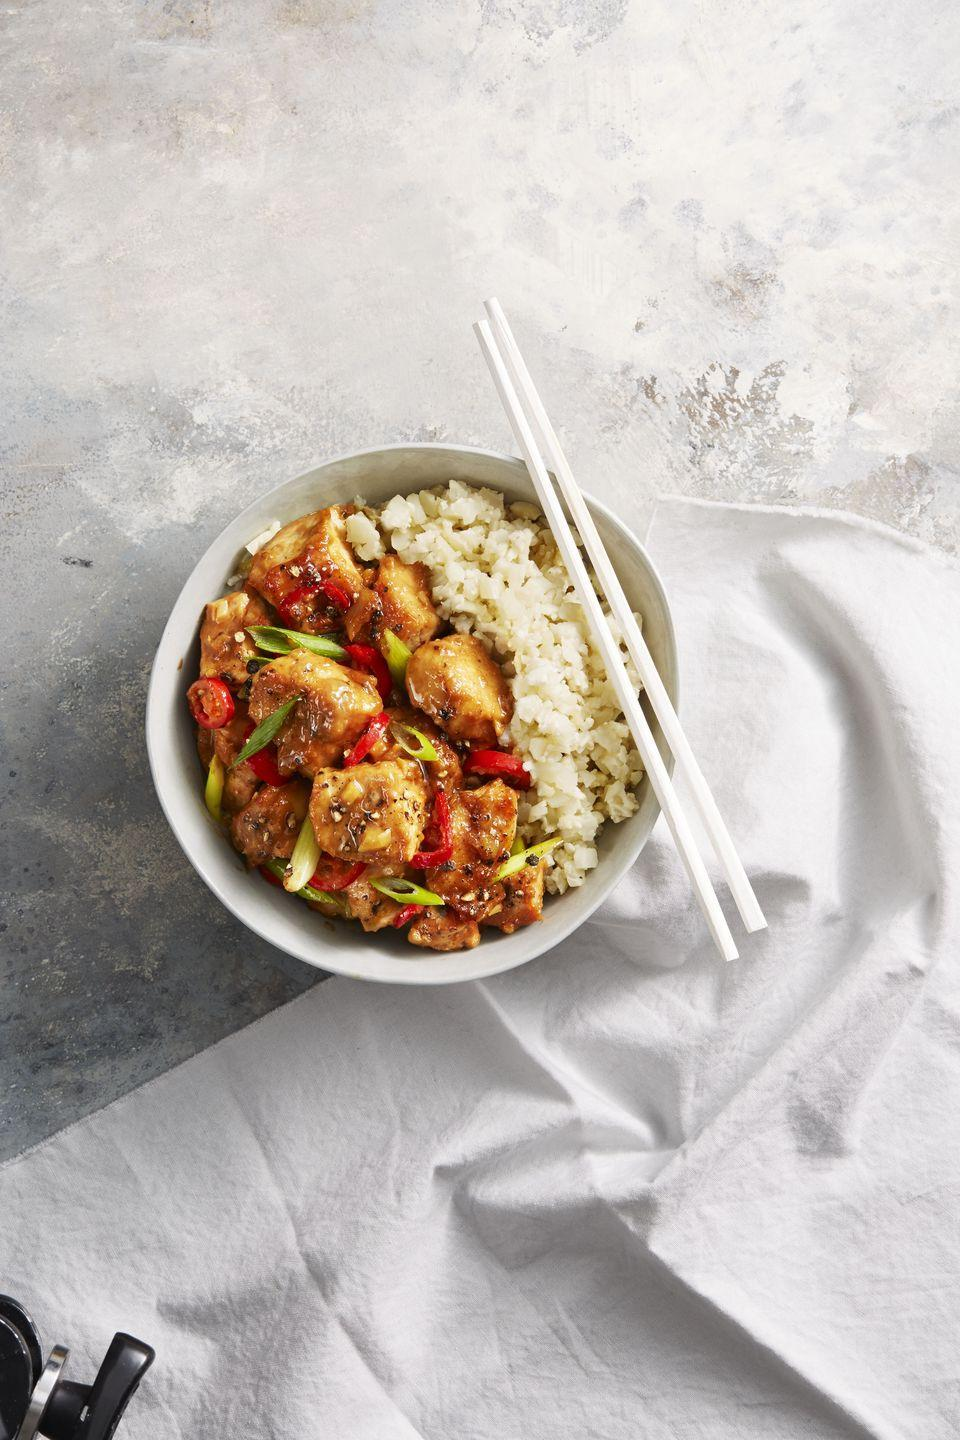 """<p>This bowl is low in carbs and huge on flavor thanks to a magical little thing called cauliflower rice.</p><p><a href=""""https://www.goodhousekeeping.com/food-recipes/healthy/a42219/spicy-chicken-miso-stir-fry-recipe/"""" rel=""""nofollow noopener"""" target=""""_blank"""" data-ylk=""""slk:Get the recipe for Spicy Miso Chicken Stir-Fry »"""" class=""""link rapid-noclick-resp""""><em>Get the recipe for Spicy Miso Chicken Stir-Fry »</em></a><br></p>"""